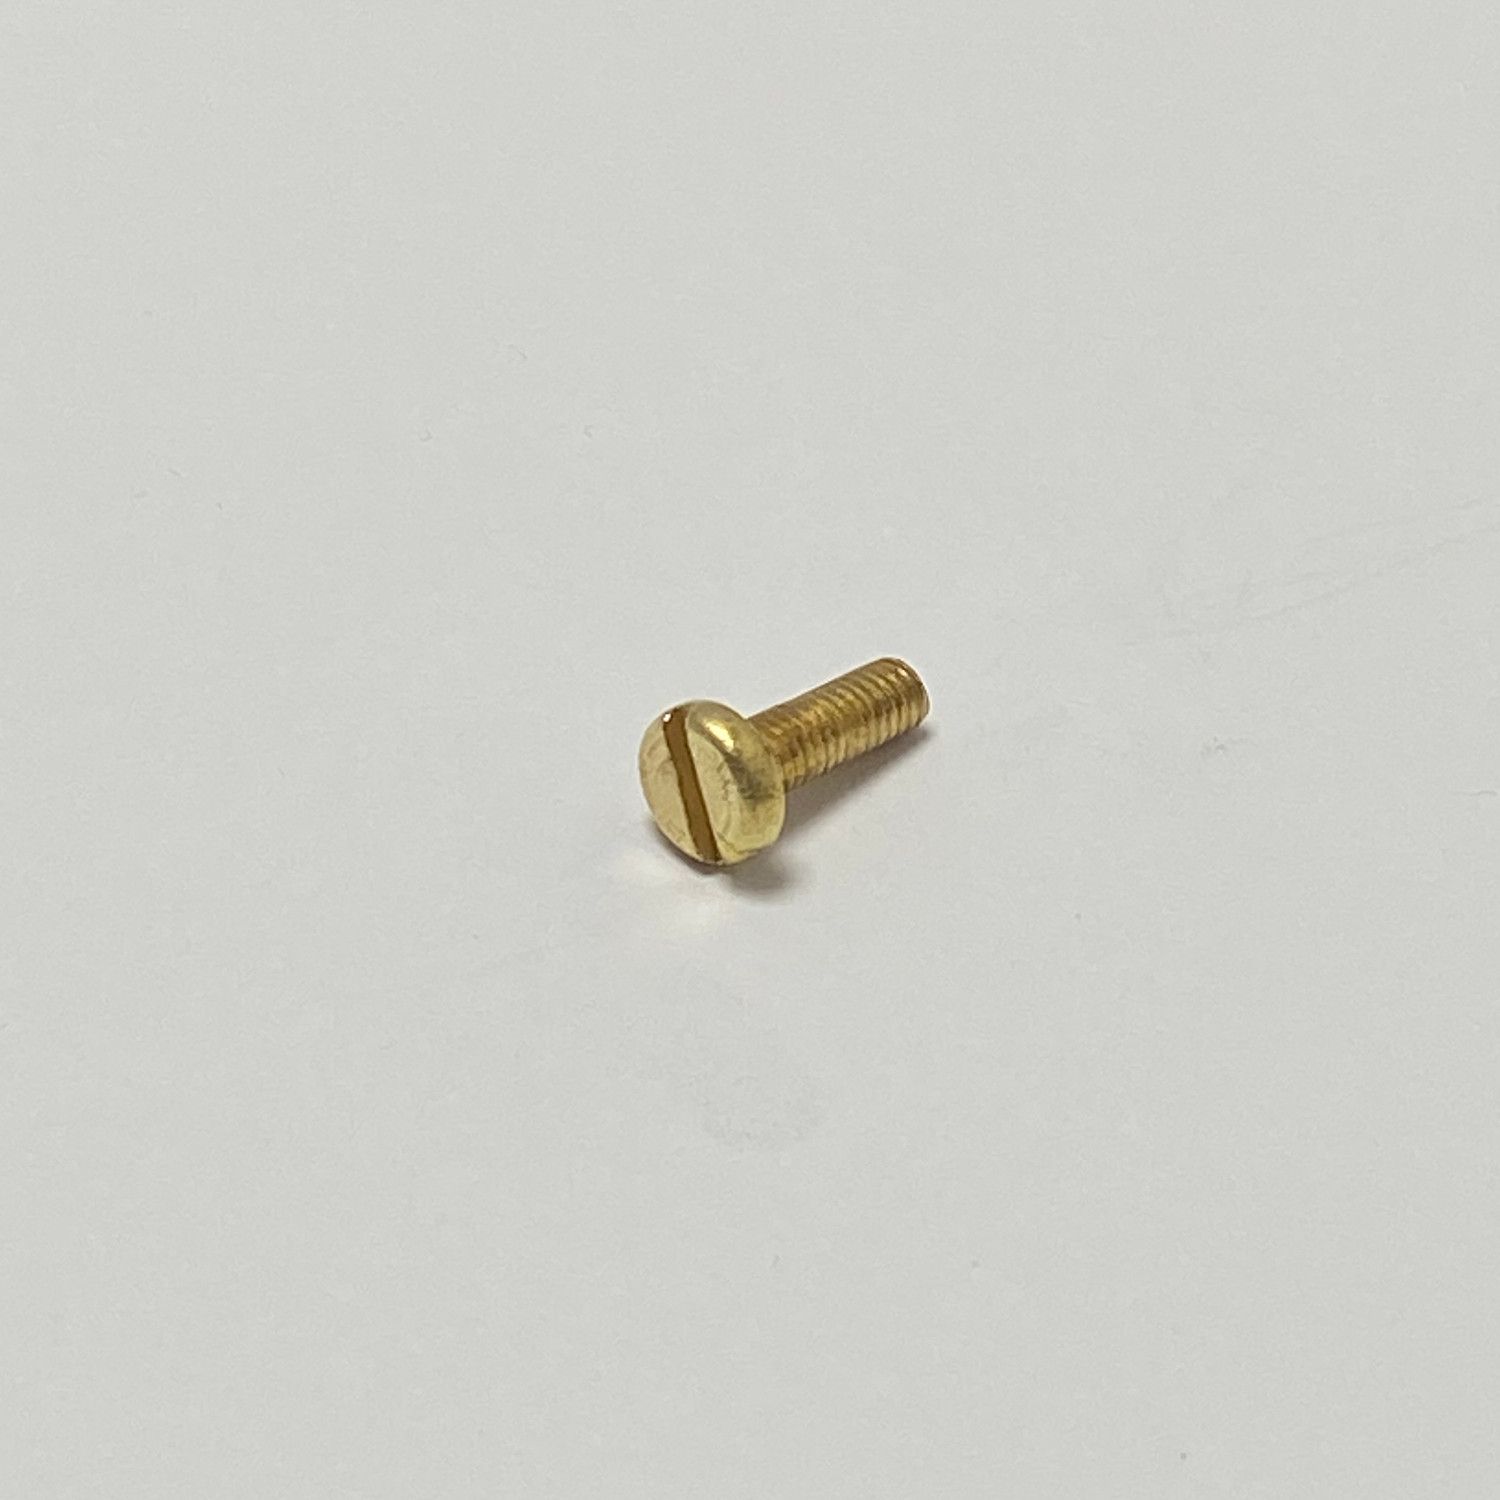 M3 X 8 BRASS SLOTTED CHEESE SCREWS